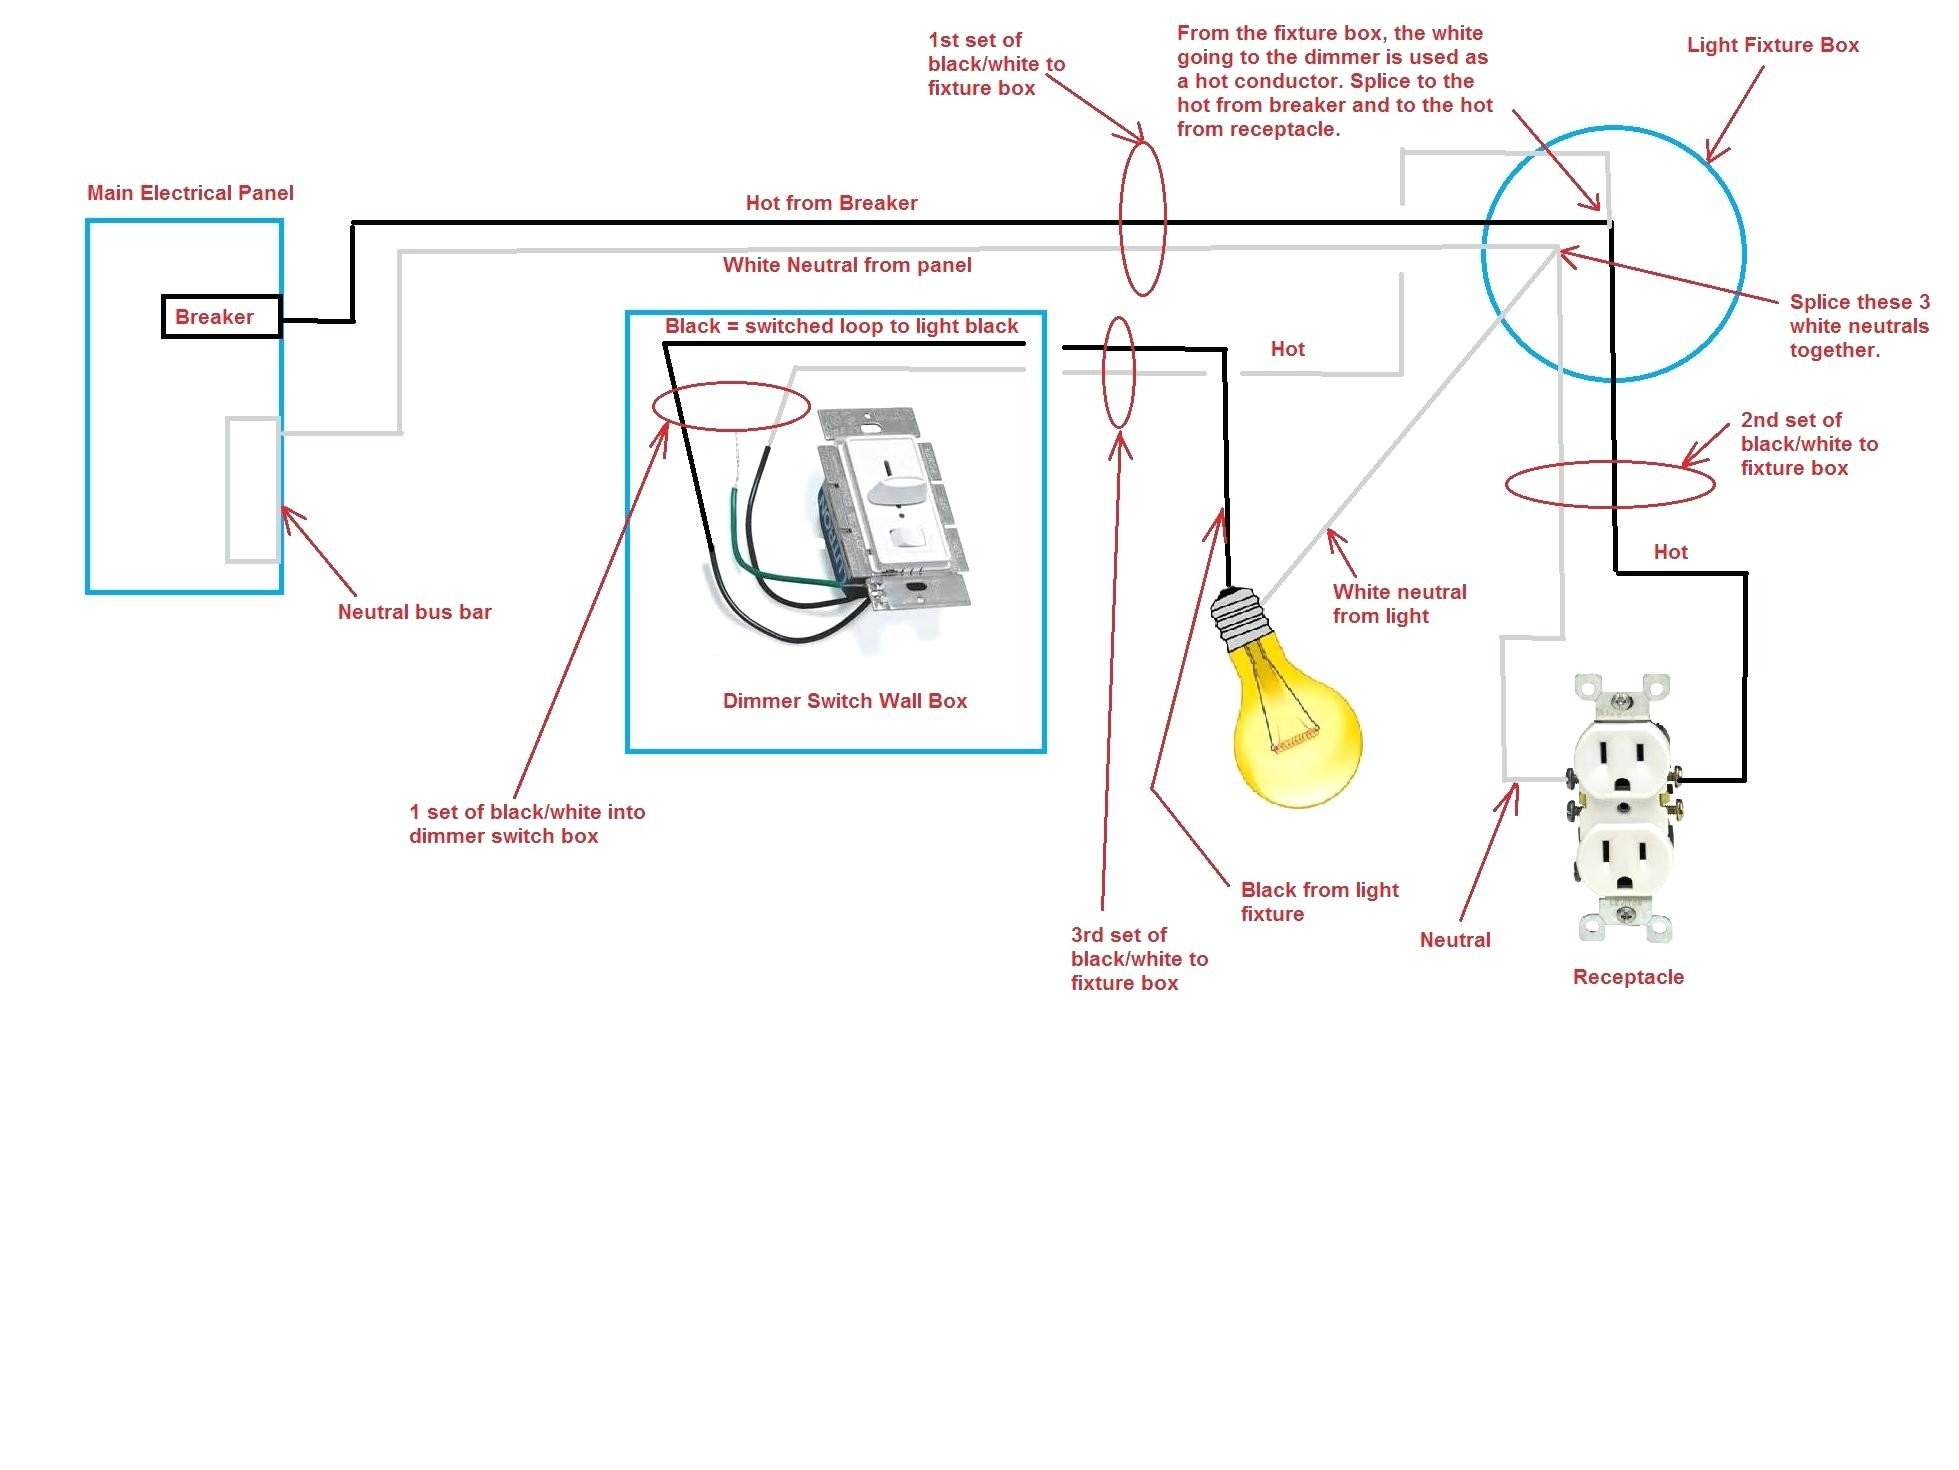 Light socket Wiring Diagram 2 Switches E Light Wiring Diagram Gang Switch Australia Electrical Of Light socket Wiring Diagram